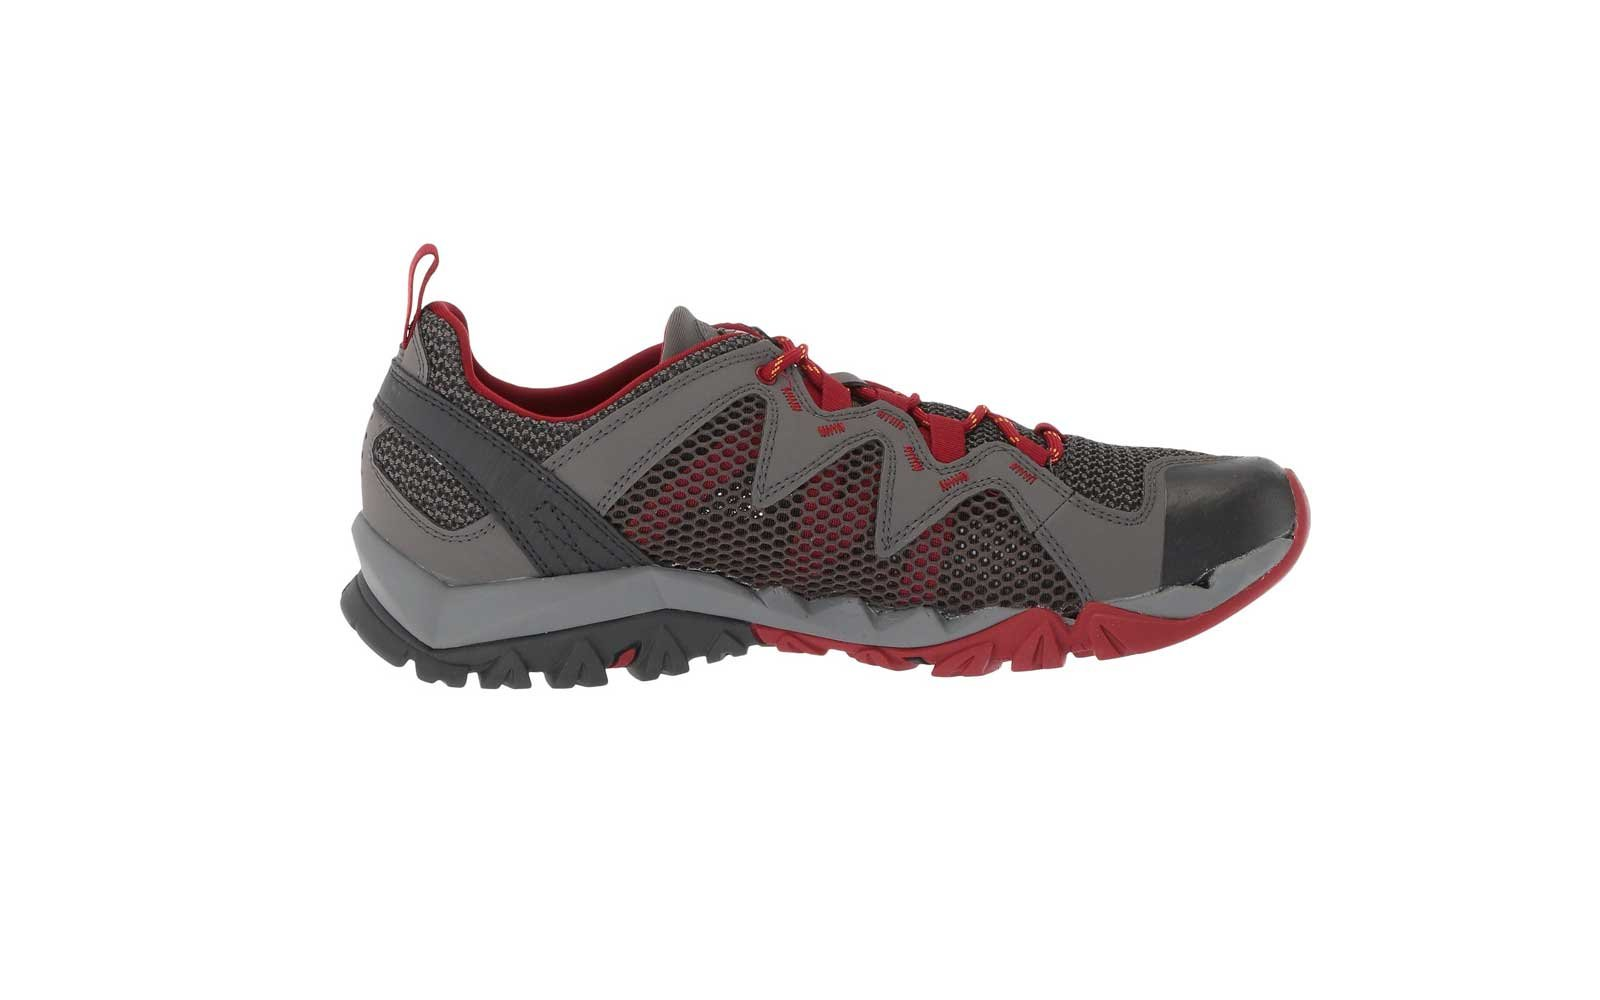 1d114d07b3c0e5 Merrell  Tetrex Rapid Crest  Water Shoes. merrell mens water shoes